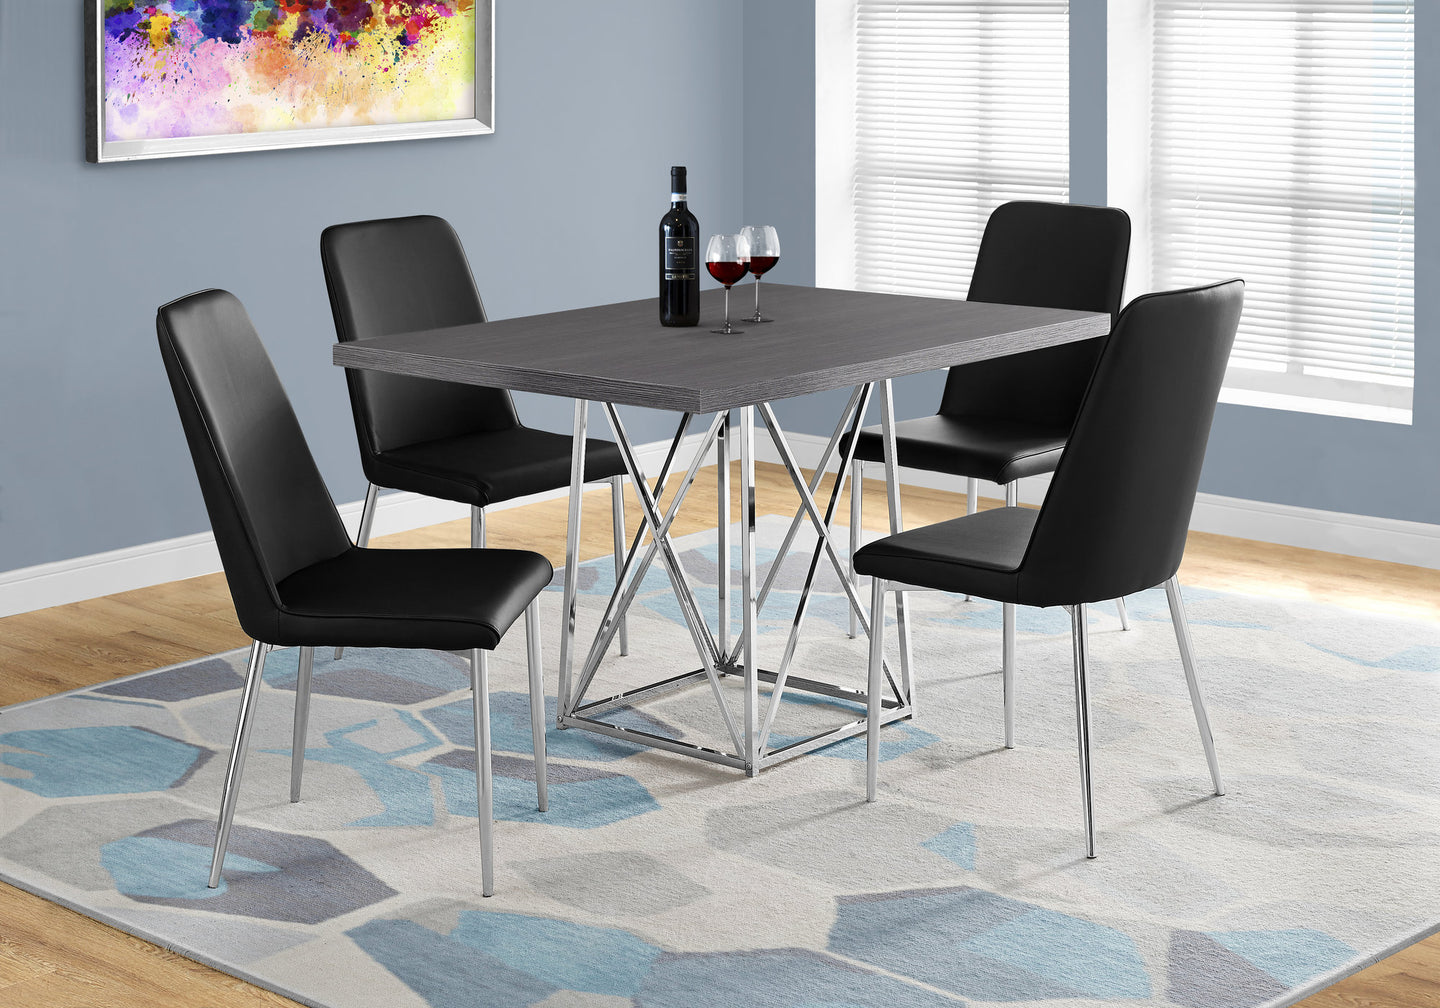 Candace Basil Furniture Dining Table 36 X 48 Grey Chrome